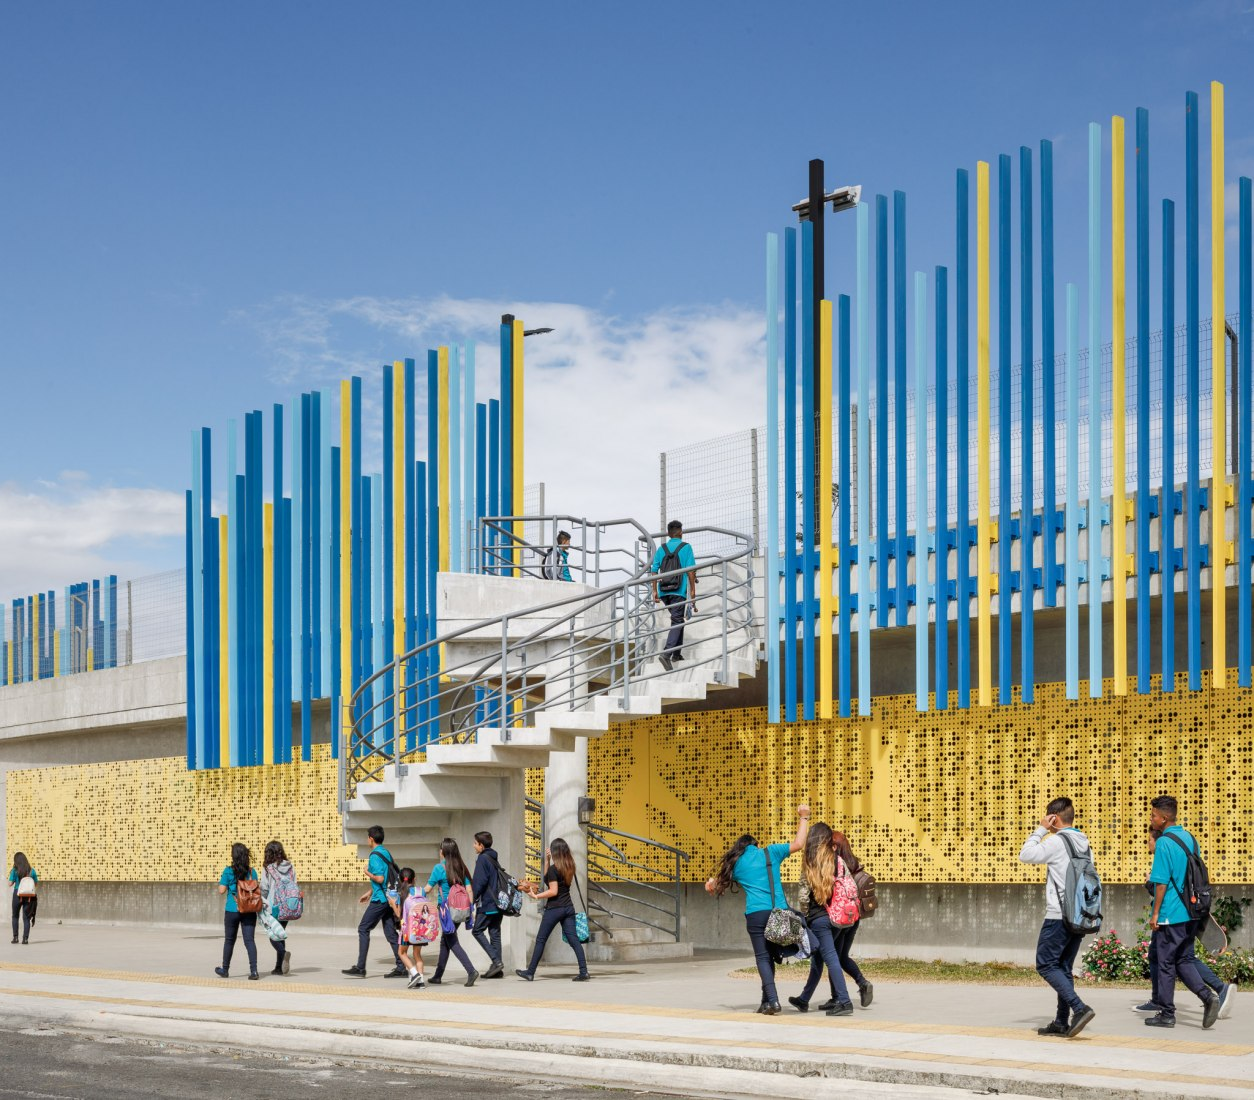 Exterior view. Civic Center for Peace by Norte Sur Arquitectos. Photograph by Fernando Alda